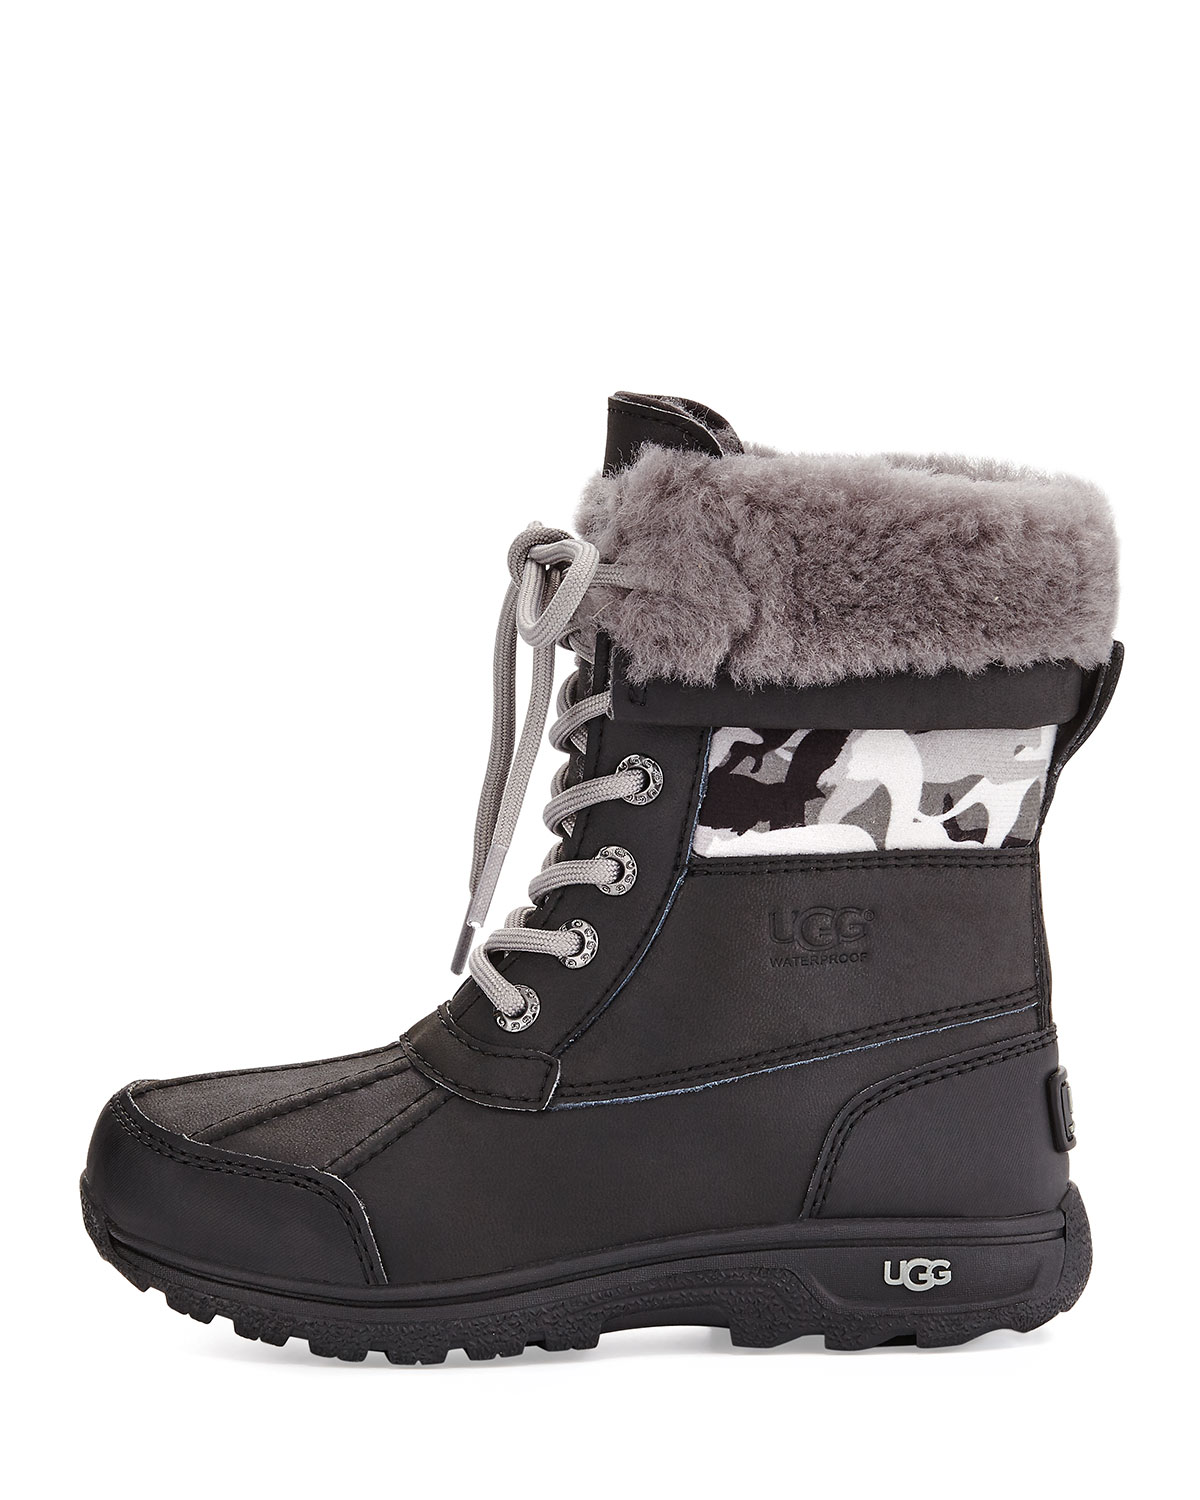 b974b24e286 Butte II Backcountry Camo-Trim Leather Boots, Black, Youth